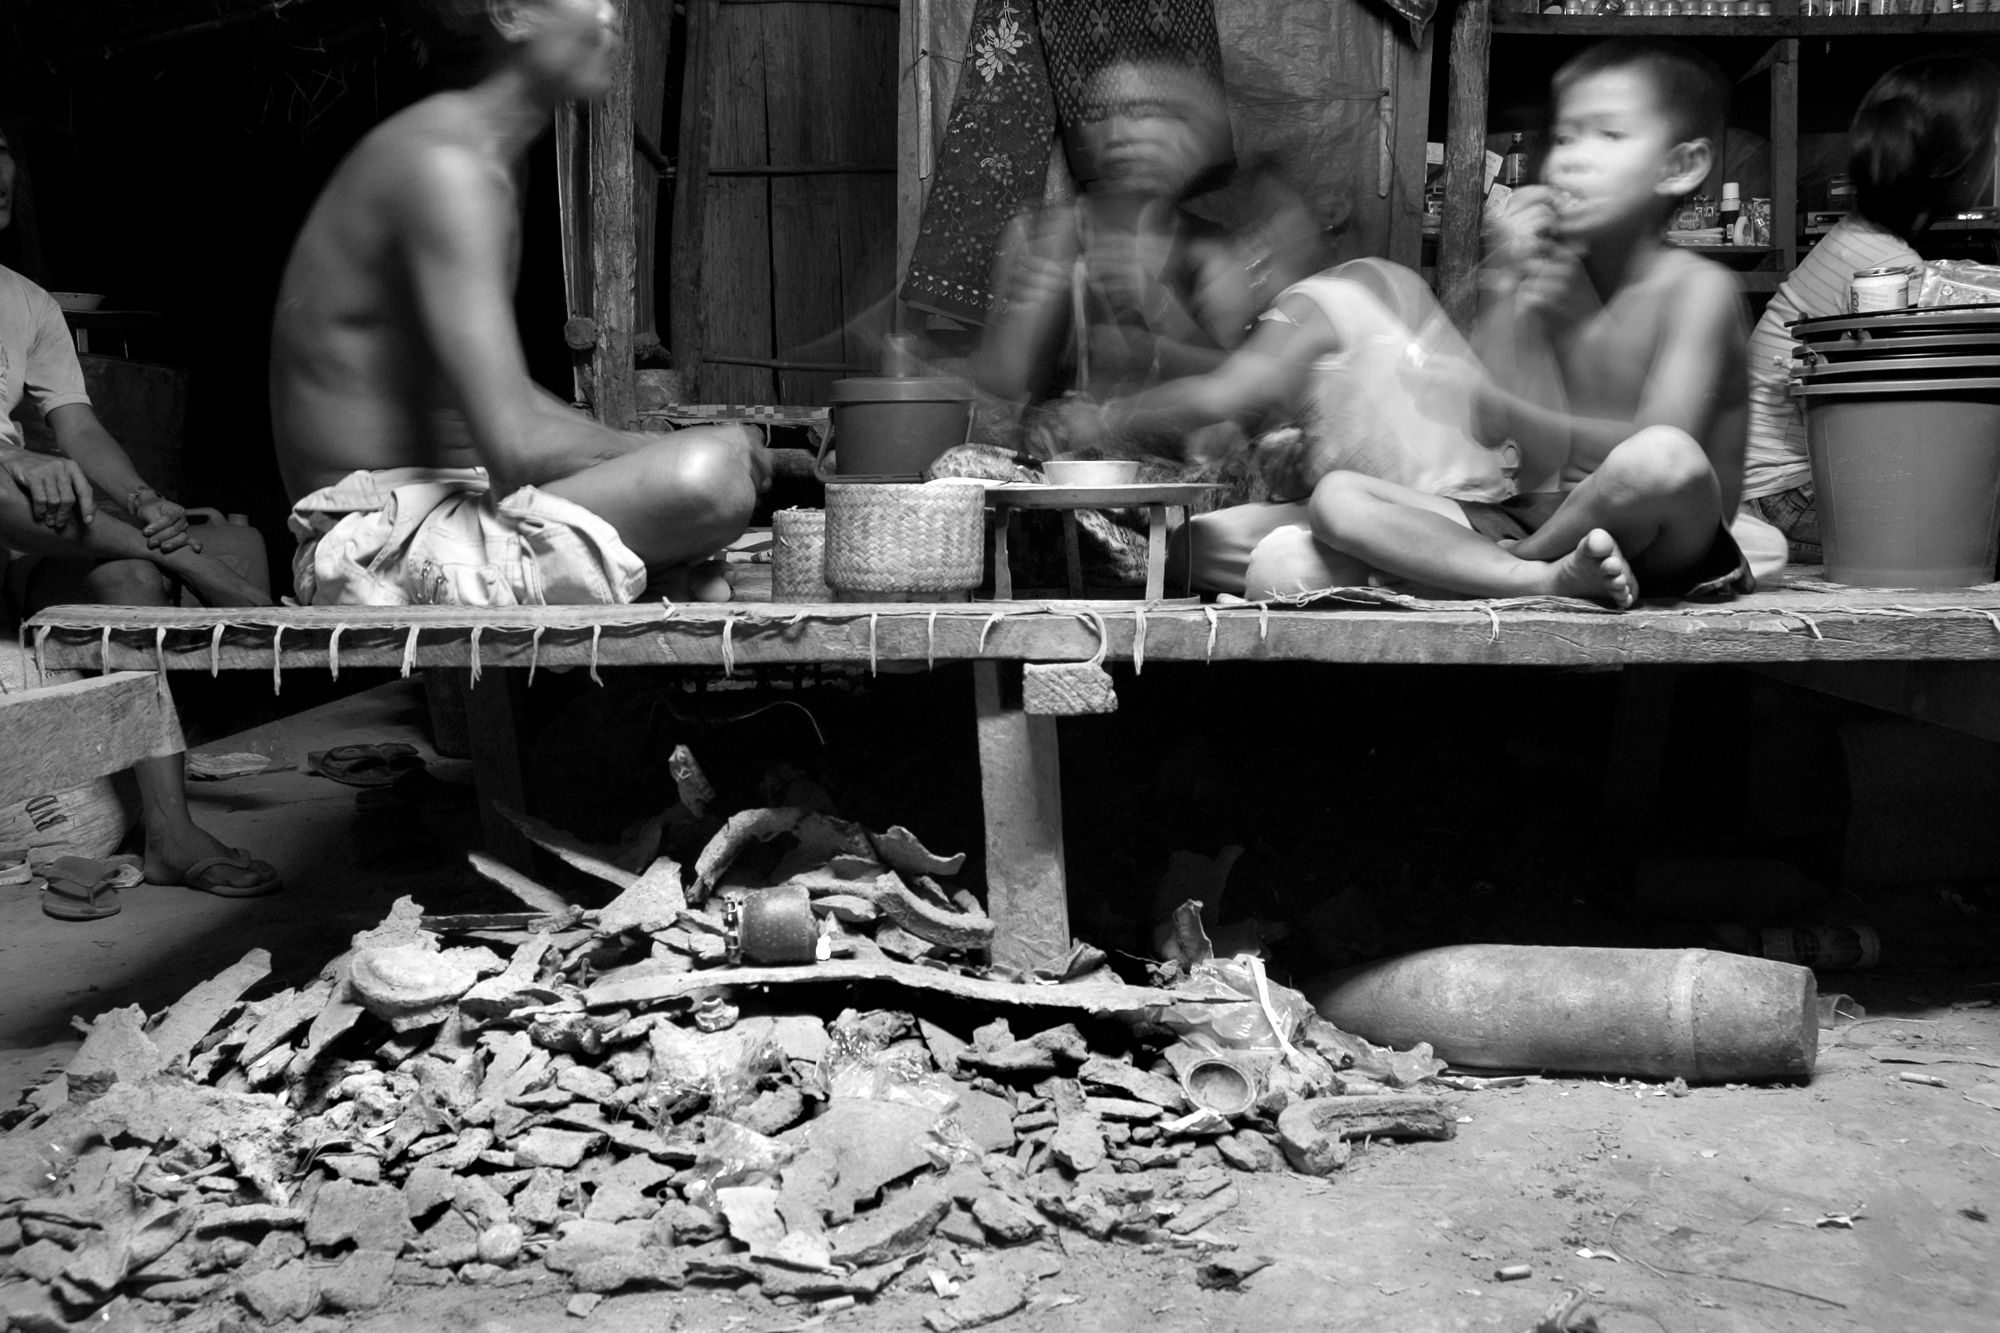 A Vietnamese trader's family has dinner over a pile of bomb shrapnel, cluster bombs and an artillery shell in their hut in Etoum, Attapeu Province, Laos. Vietnamese traders come to the area to buy scrap metal from locals who collect it in the surrounding fields and forest.